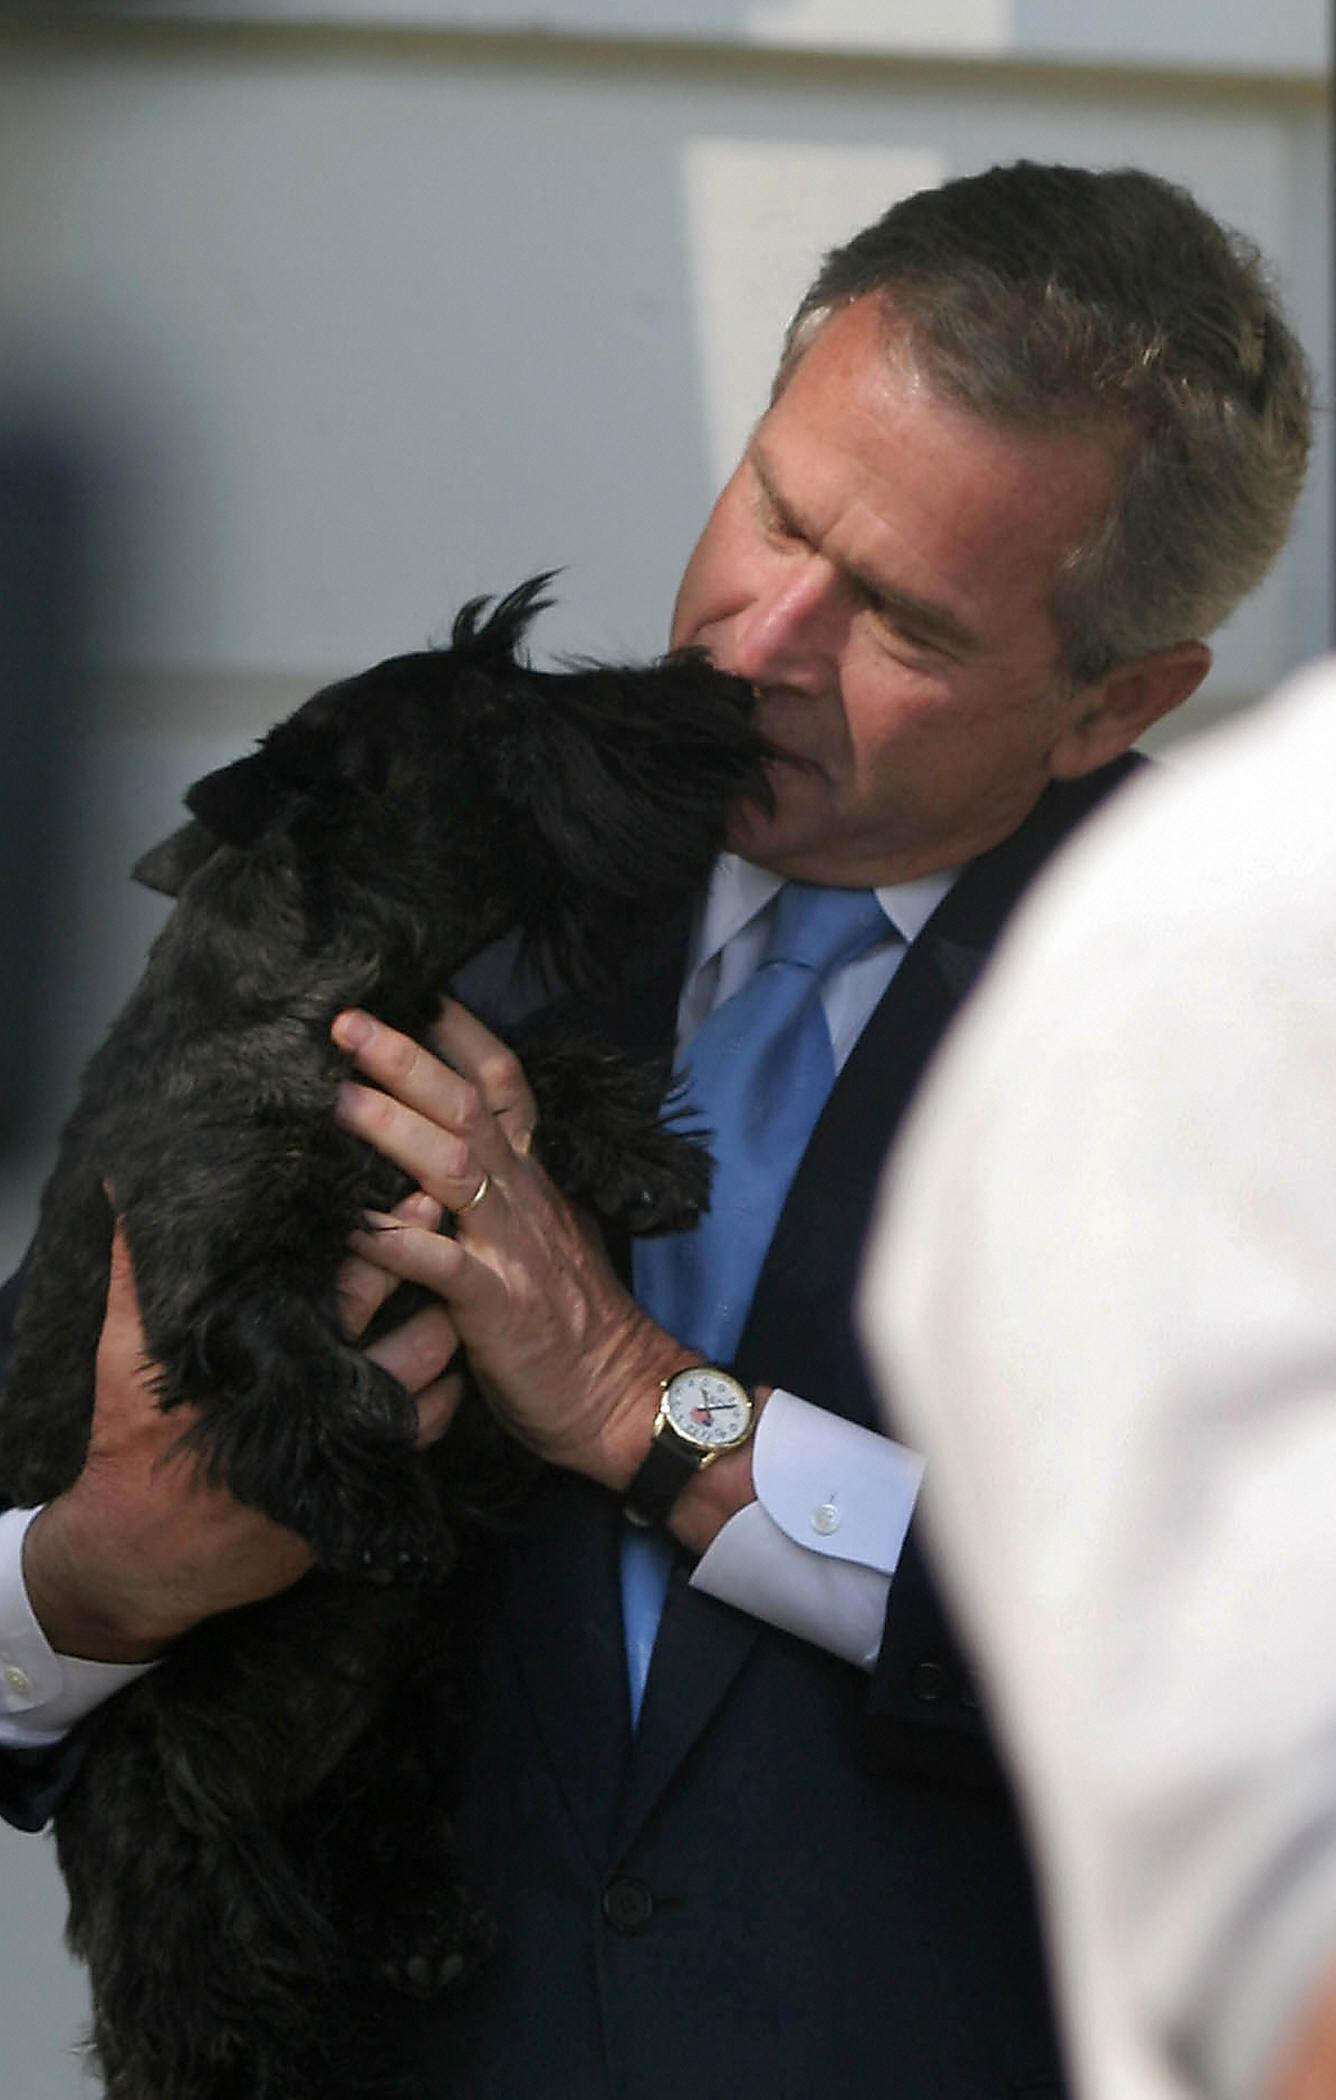 US President George W. Bush is greeted by one of his dogs after arriving from giving the commencement speech at Calvin College in Grand Rapids, Michigan, aboard Marine One on the south lawn of the White House in Washington on May, 21, 2005.